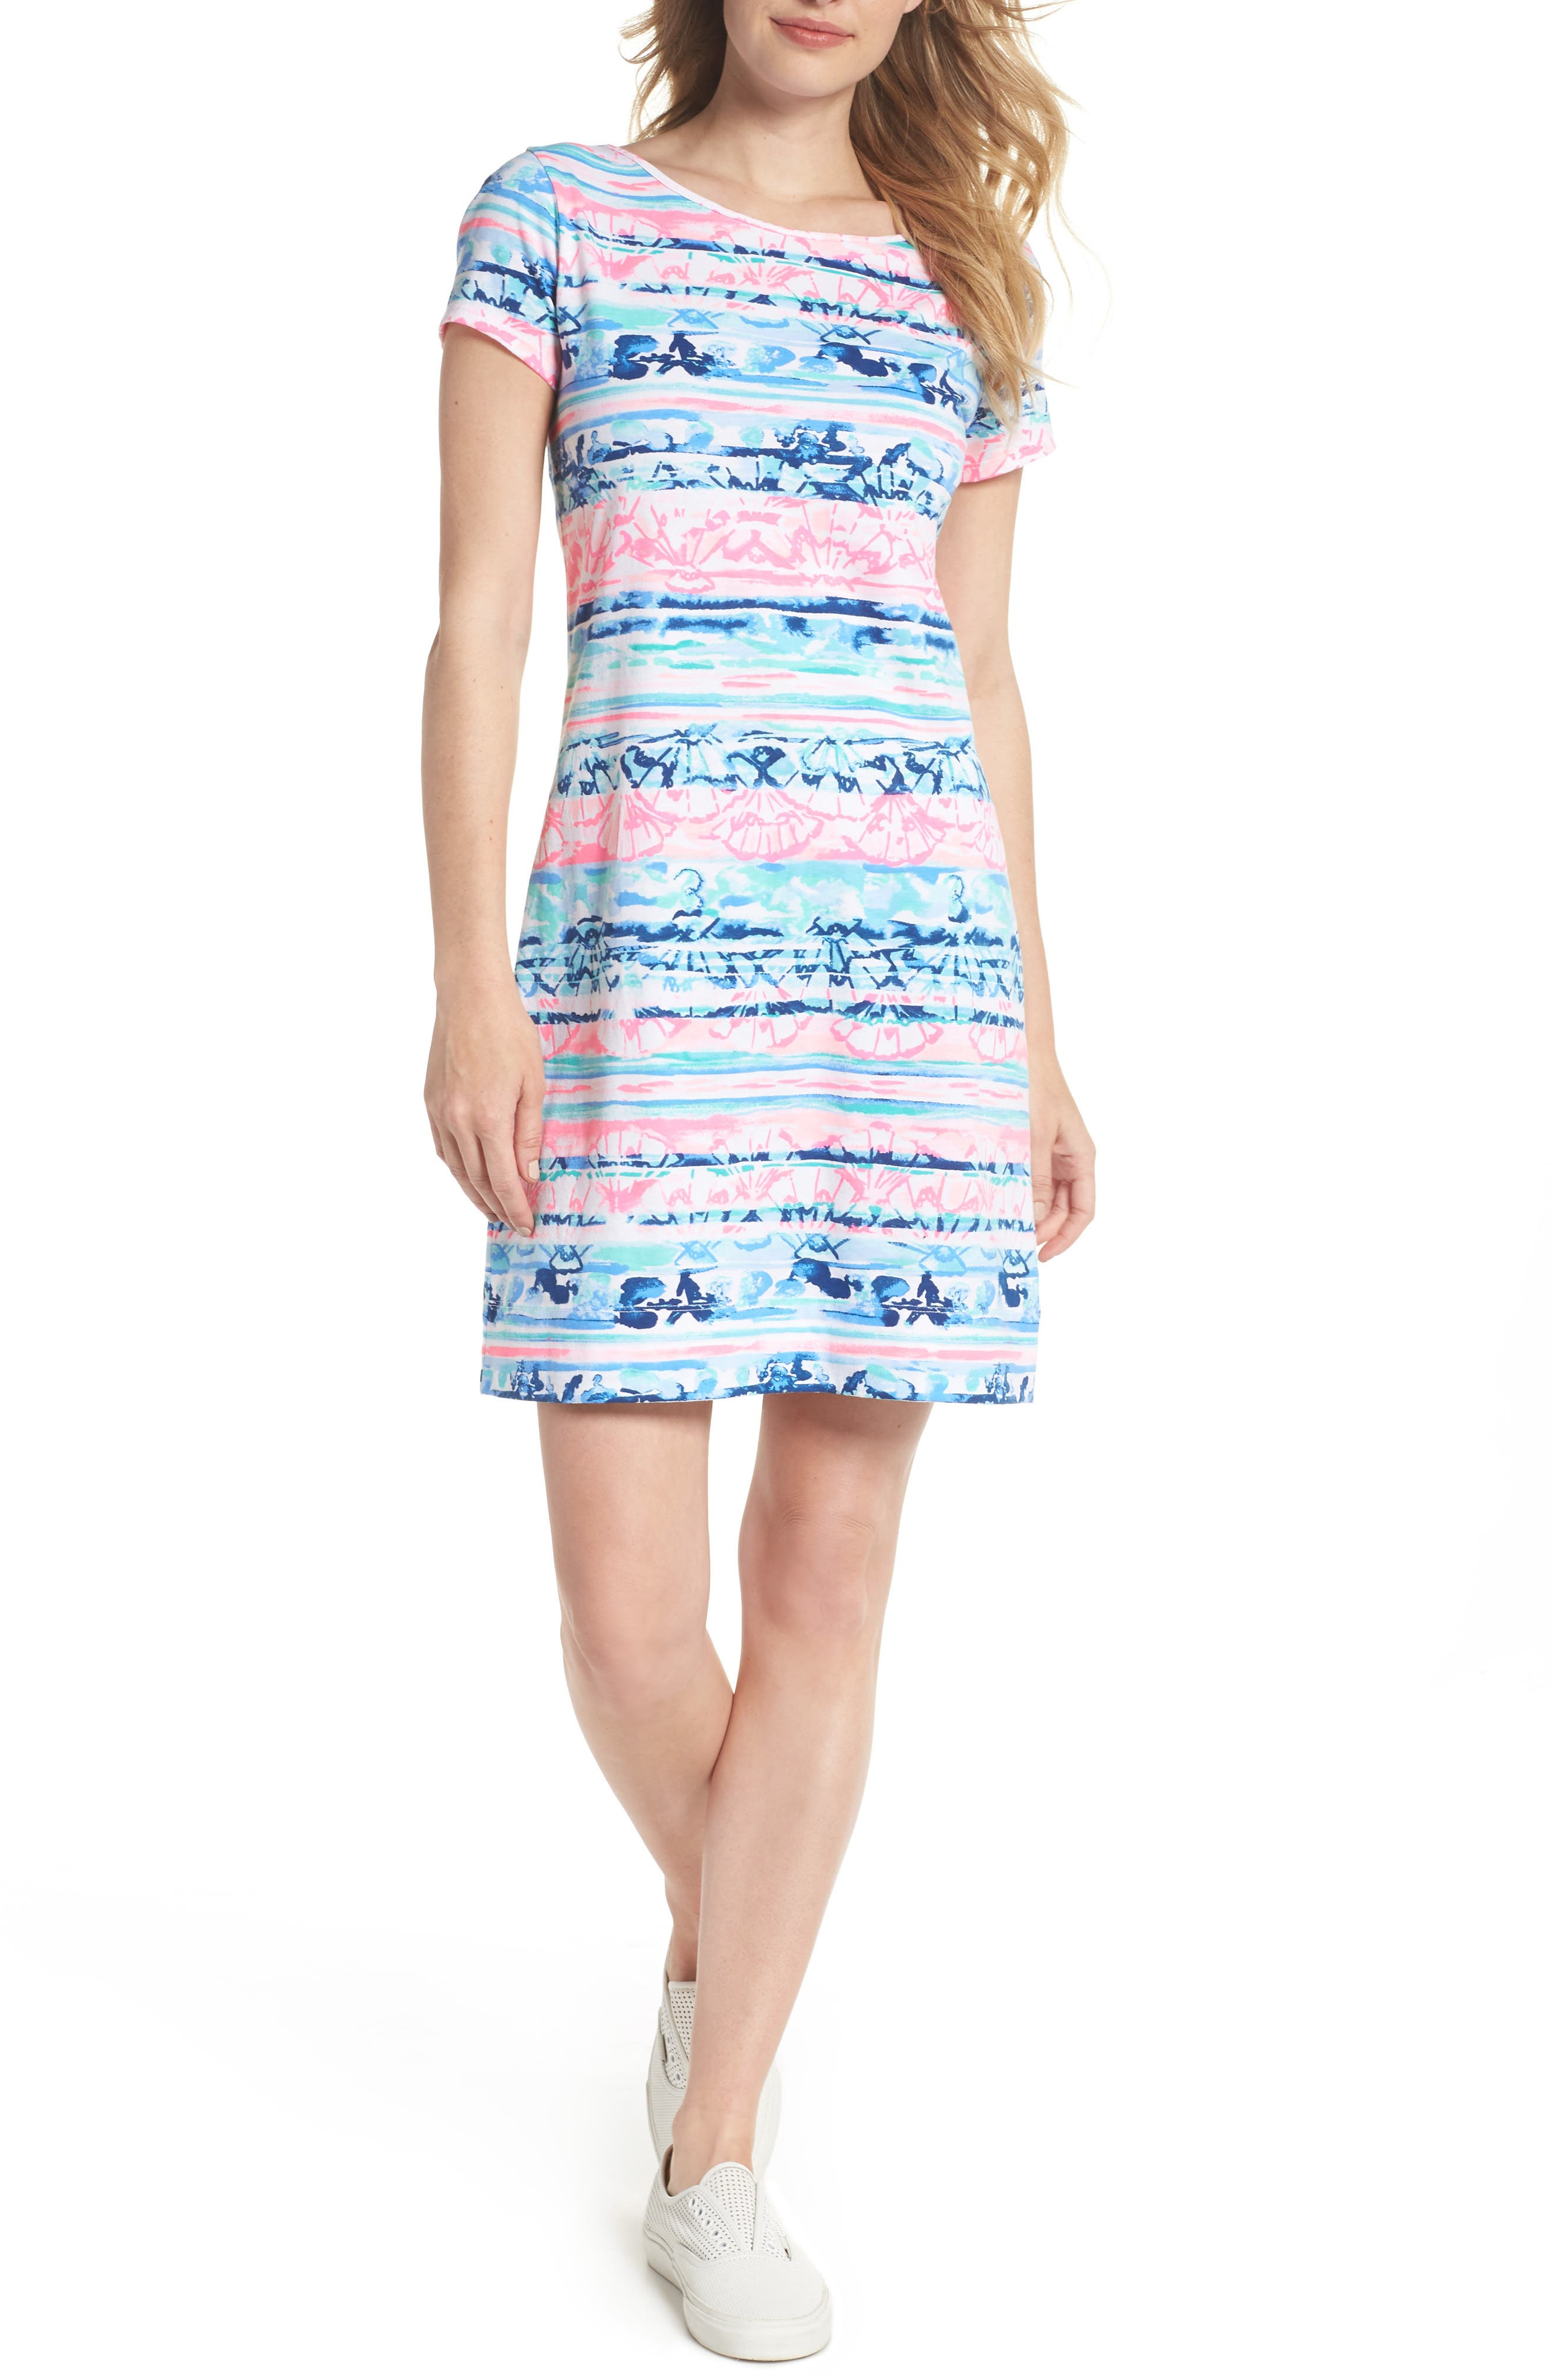 Marlowe T-Shirt Dress,                             Alternate thumbnail 5, color,                             MULTI A WAVE FROM IT